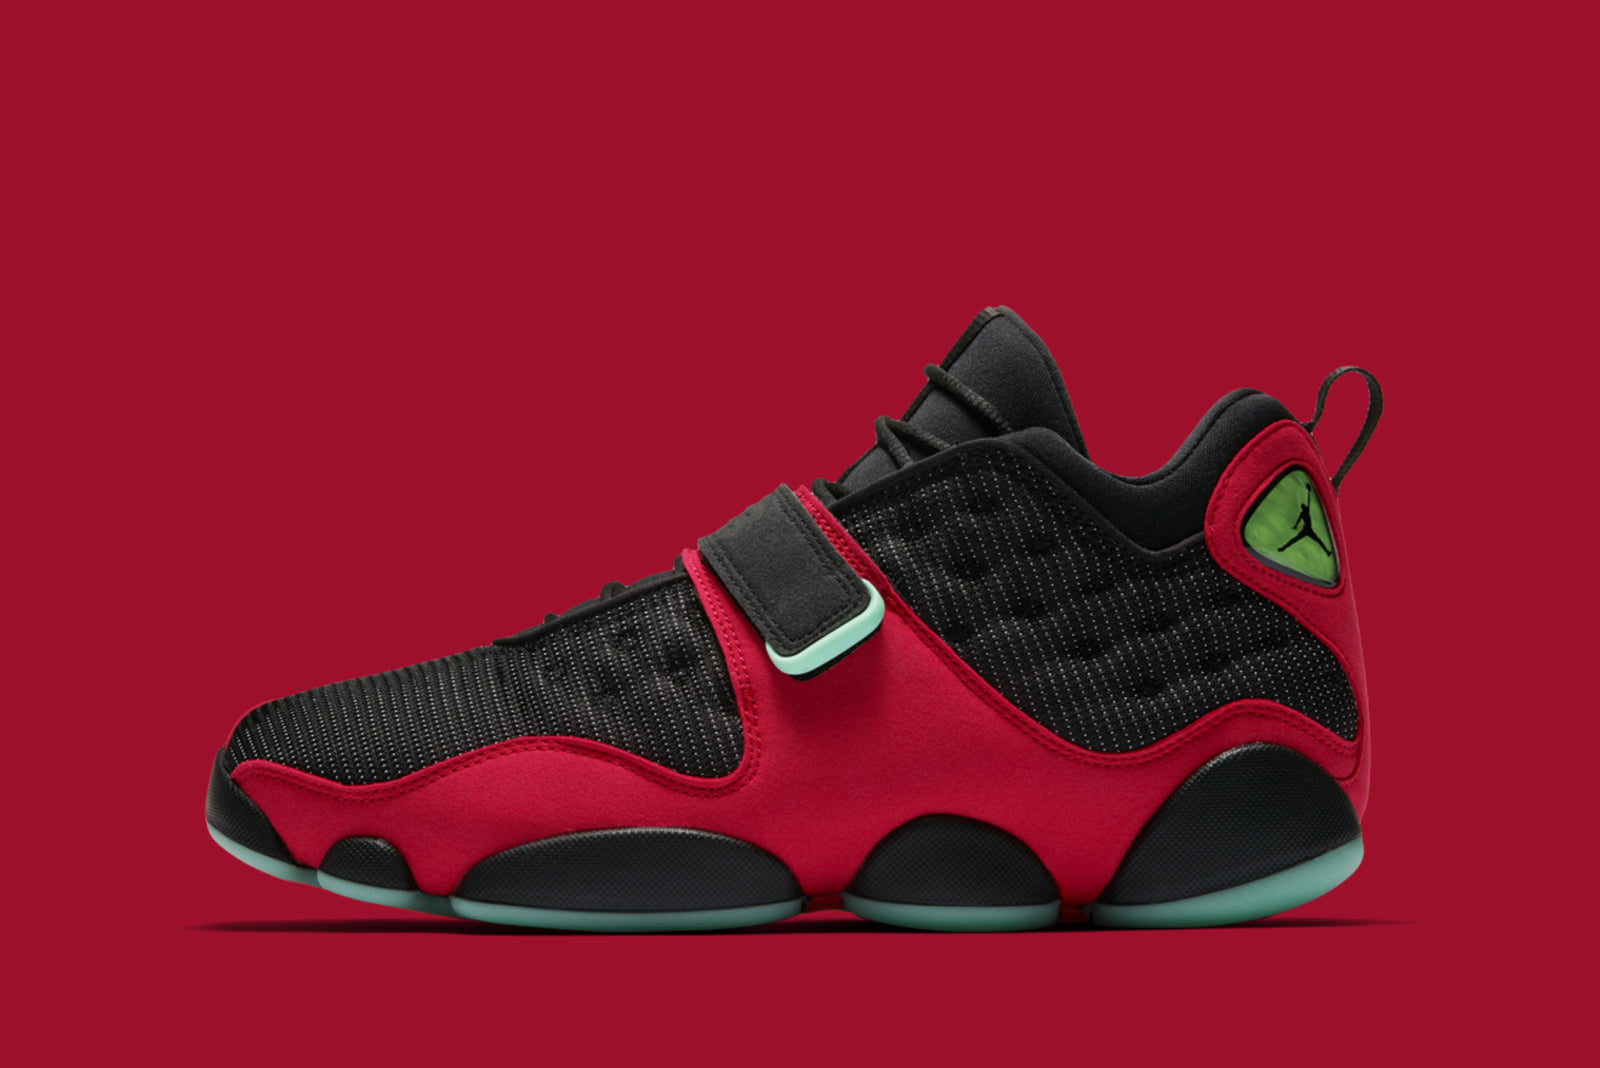 51a36a93b1083e The second Air Jordan launch for this week sees us treated to a first.  Jordan brand bring Tinker Hatfield s original sketch for the Air Jordan 13  to life.